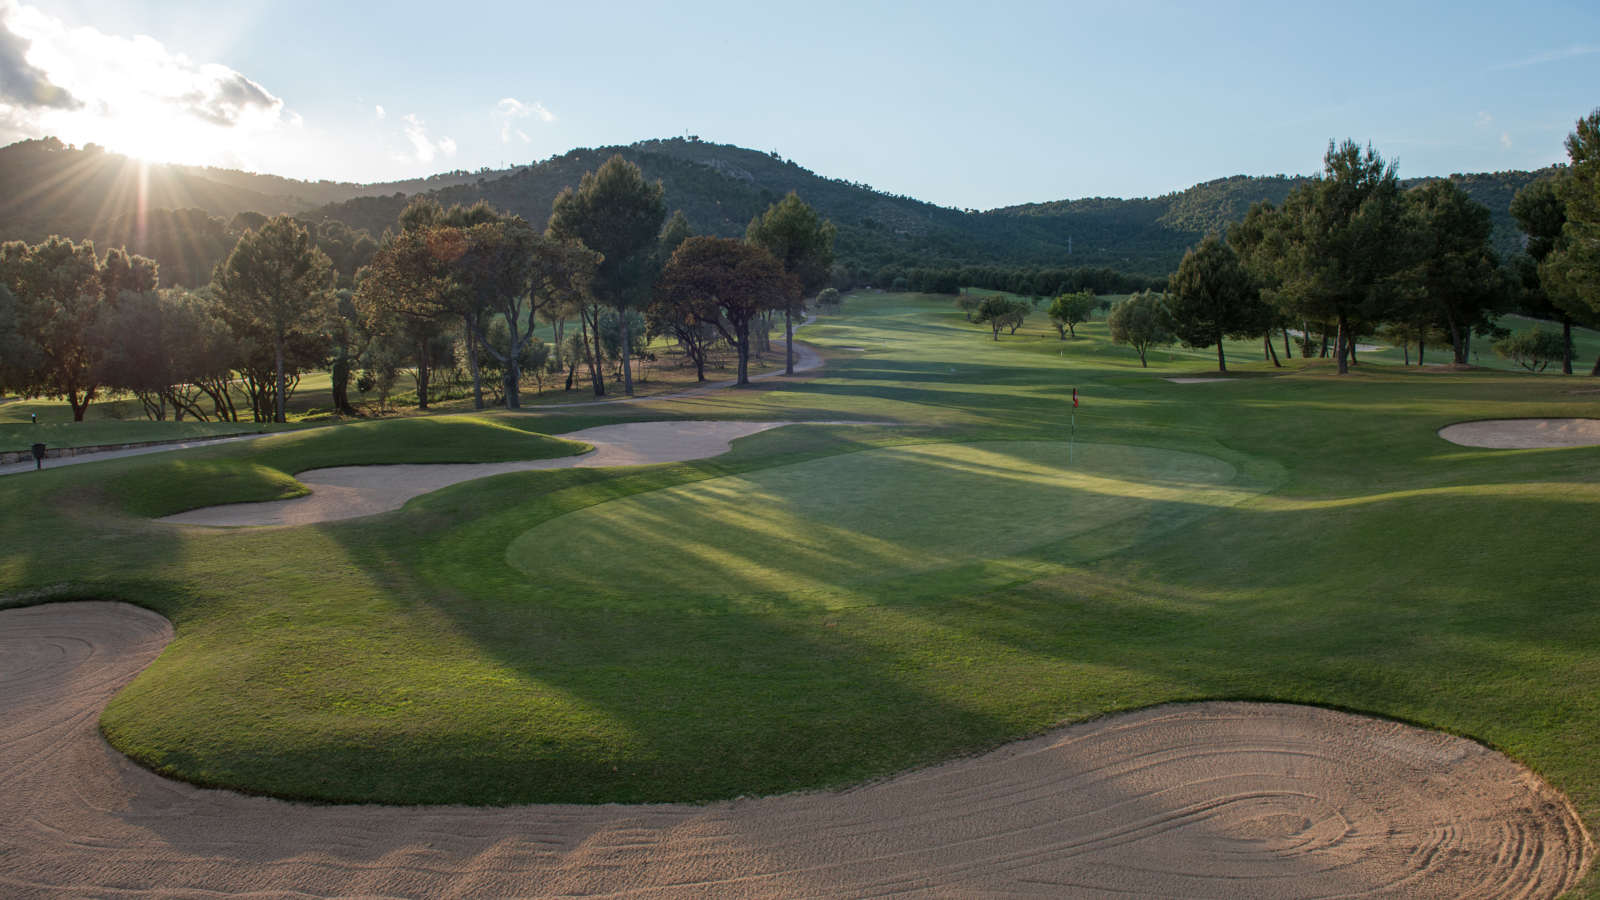 Campo de golf Son Vida del Arabella Golf